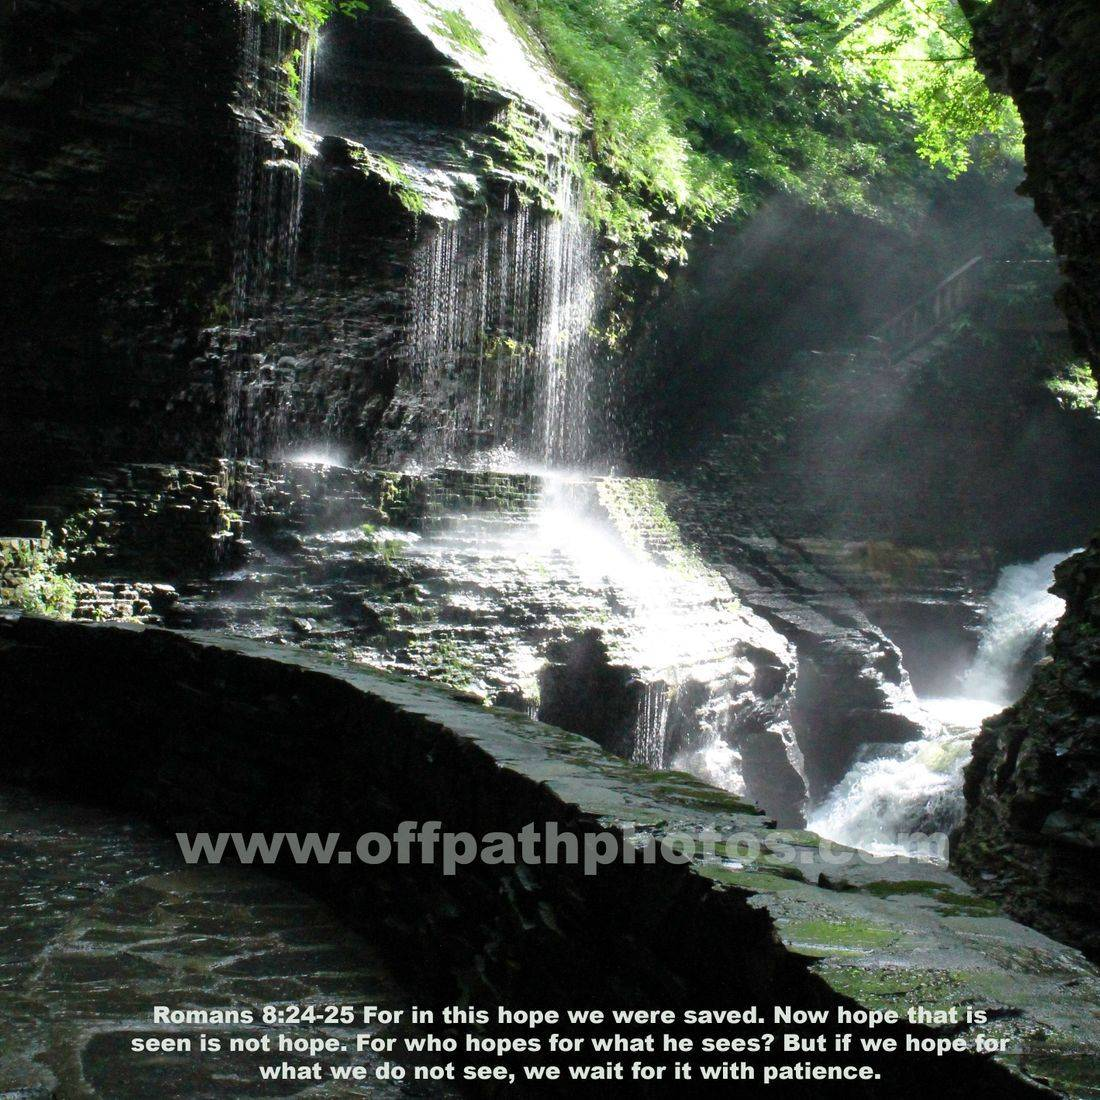 photography, nature, waterfalls, forest, cliffs, path, hiking, scenic, summer